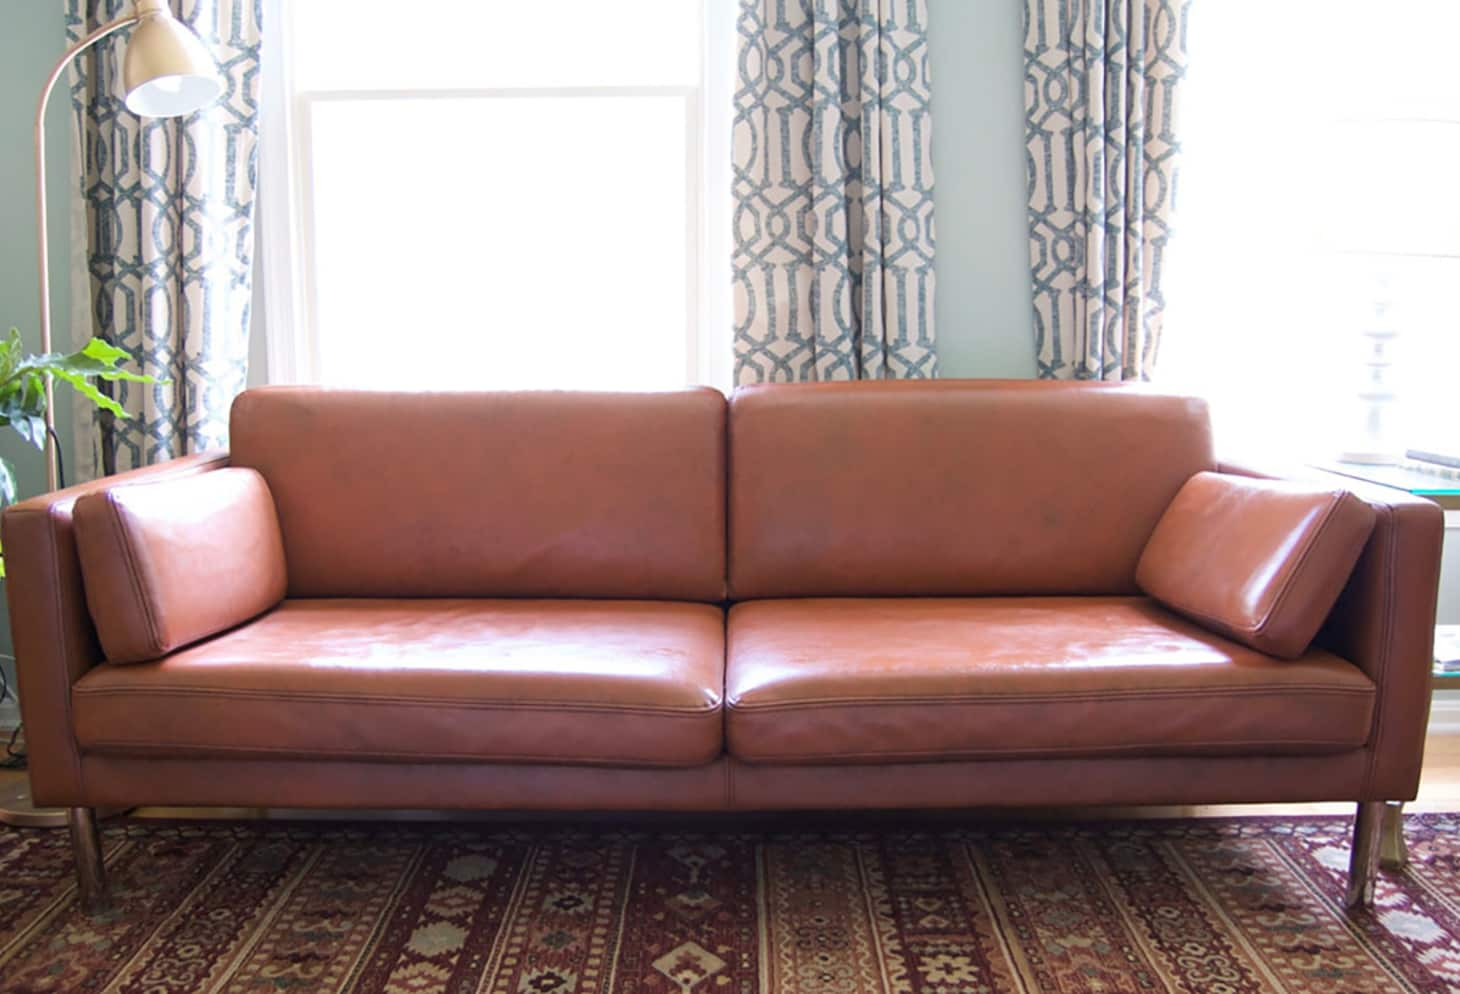 DIY Project Results: Can You Paint a Leather Sofa? | Apartment Therapy